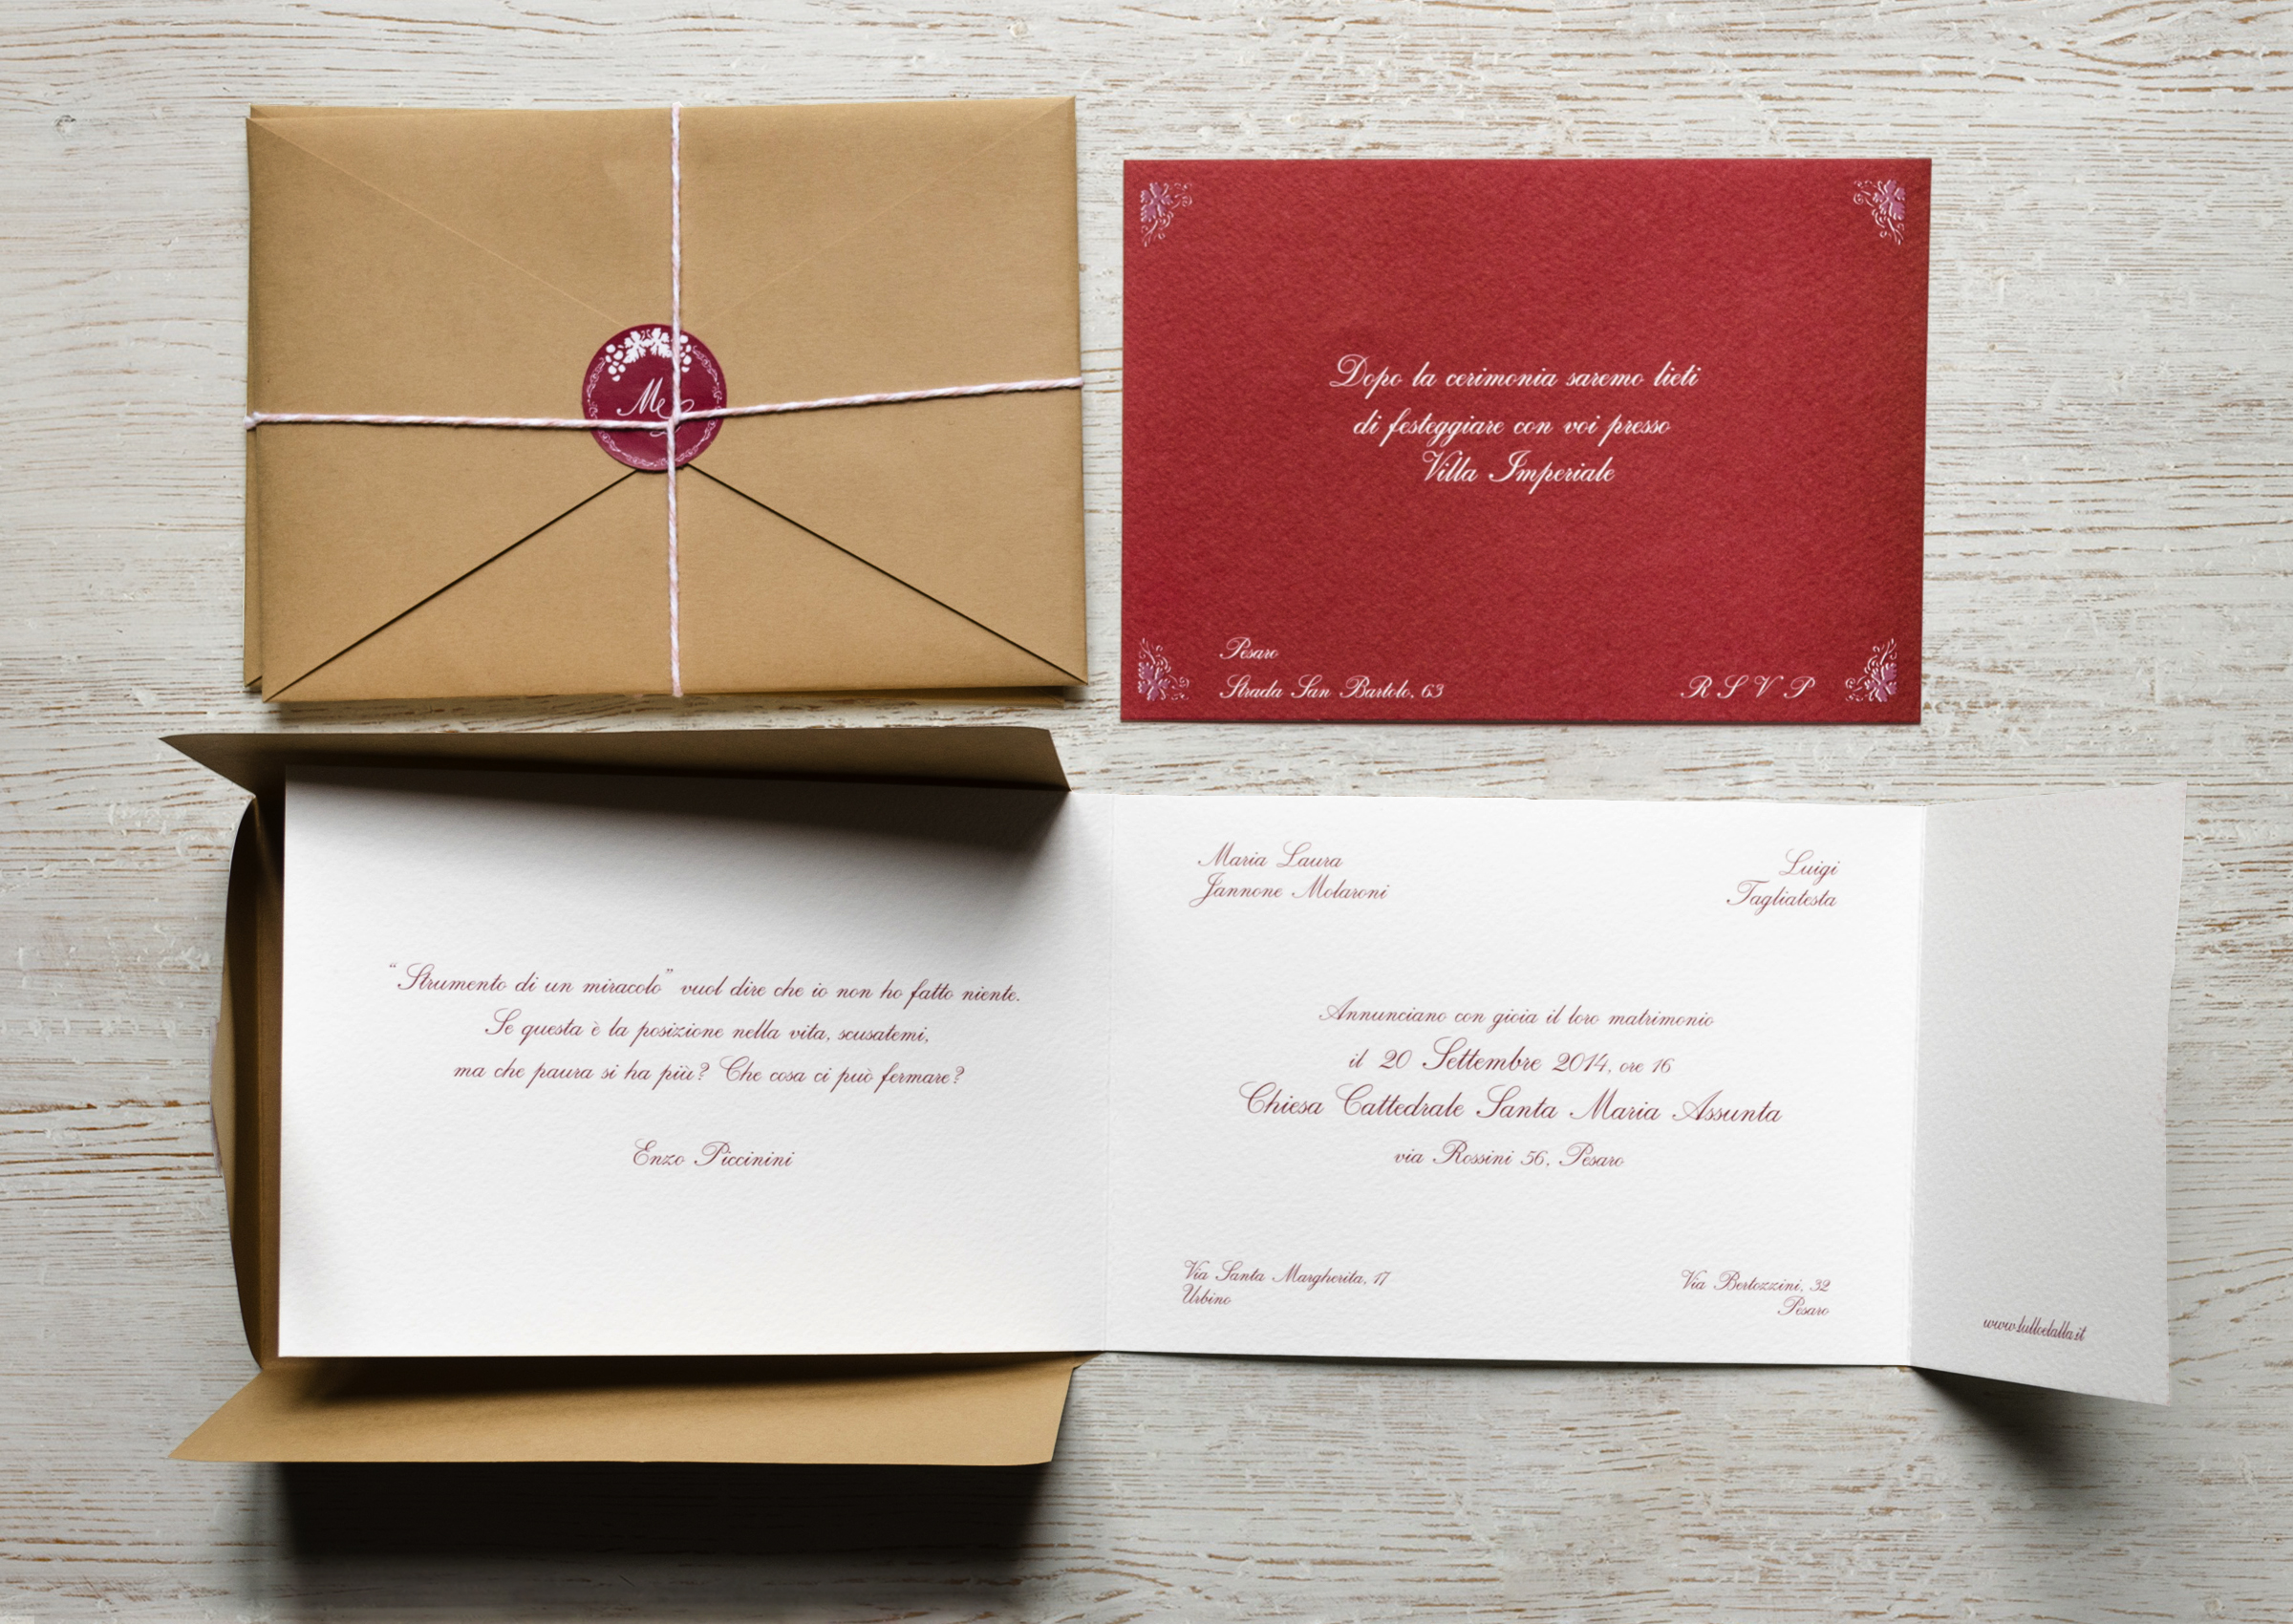 Fancy Pirate Wedding Invitations Image Collection - Invitations and ...